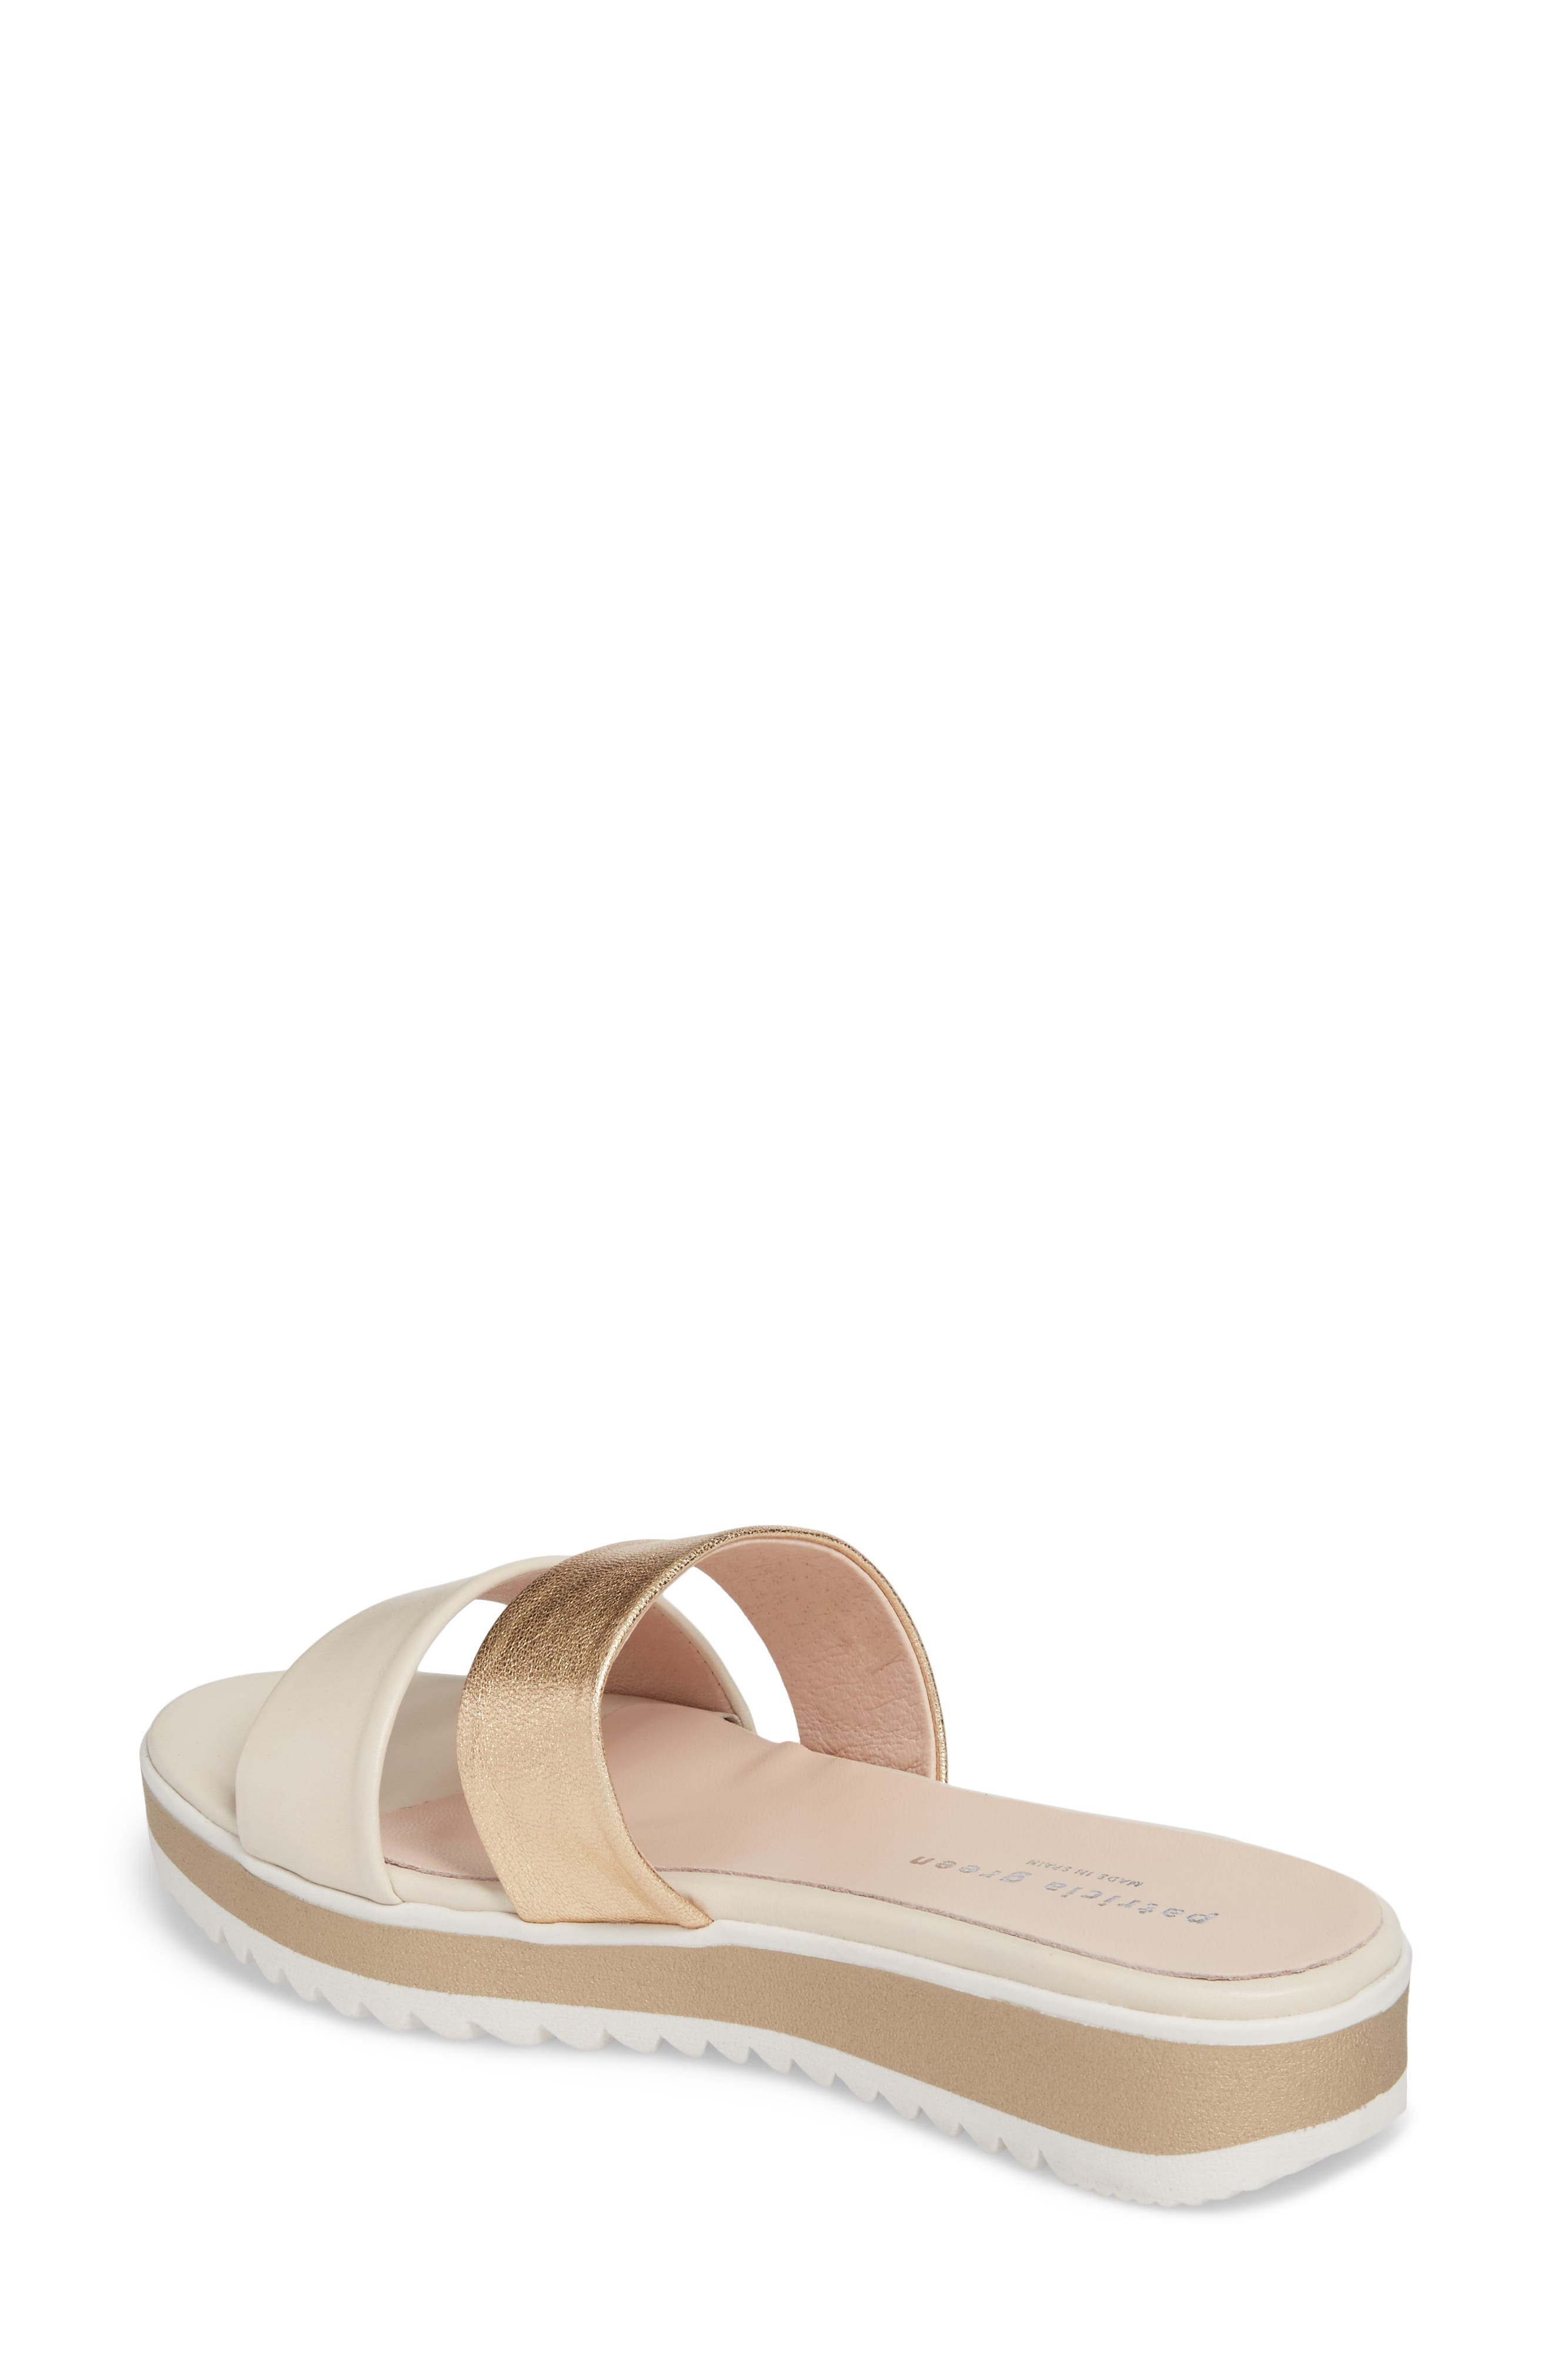 Bailey Slide Sandal,                             Alternate thumbnail 2, color,                             SAND LEATHER